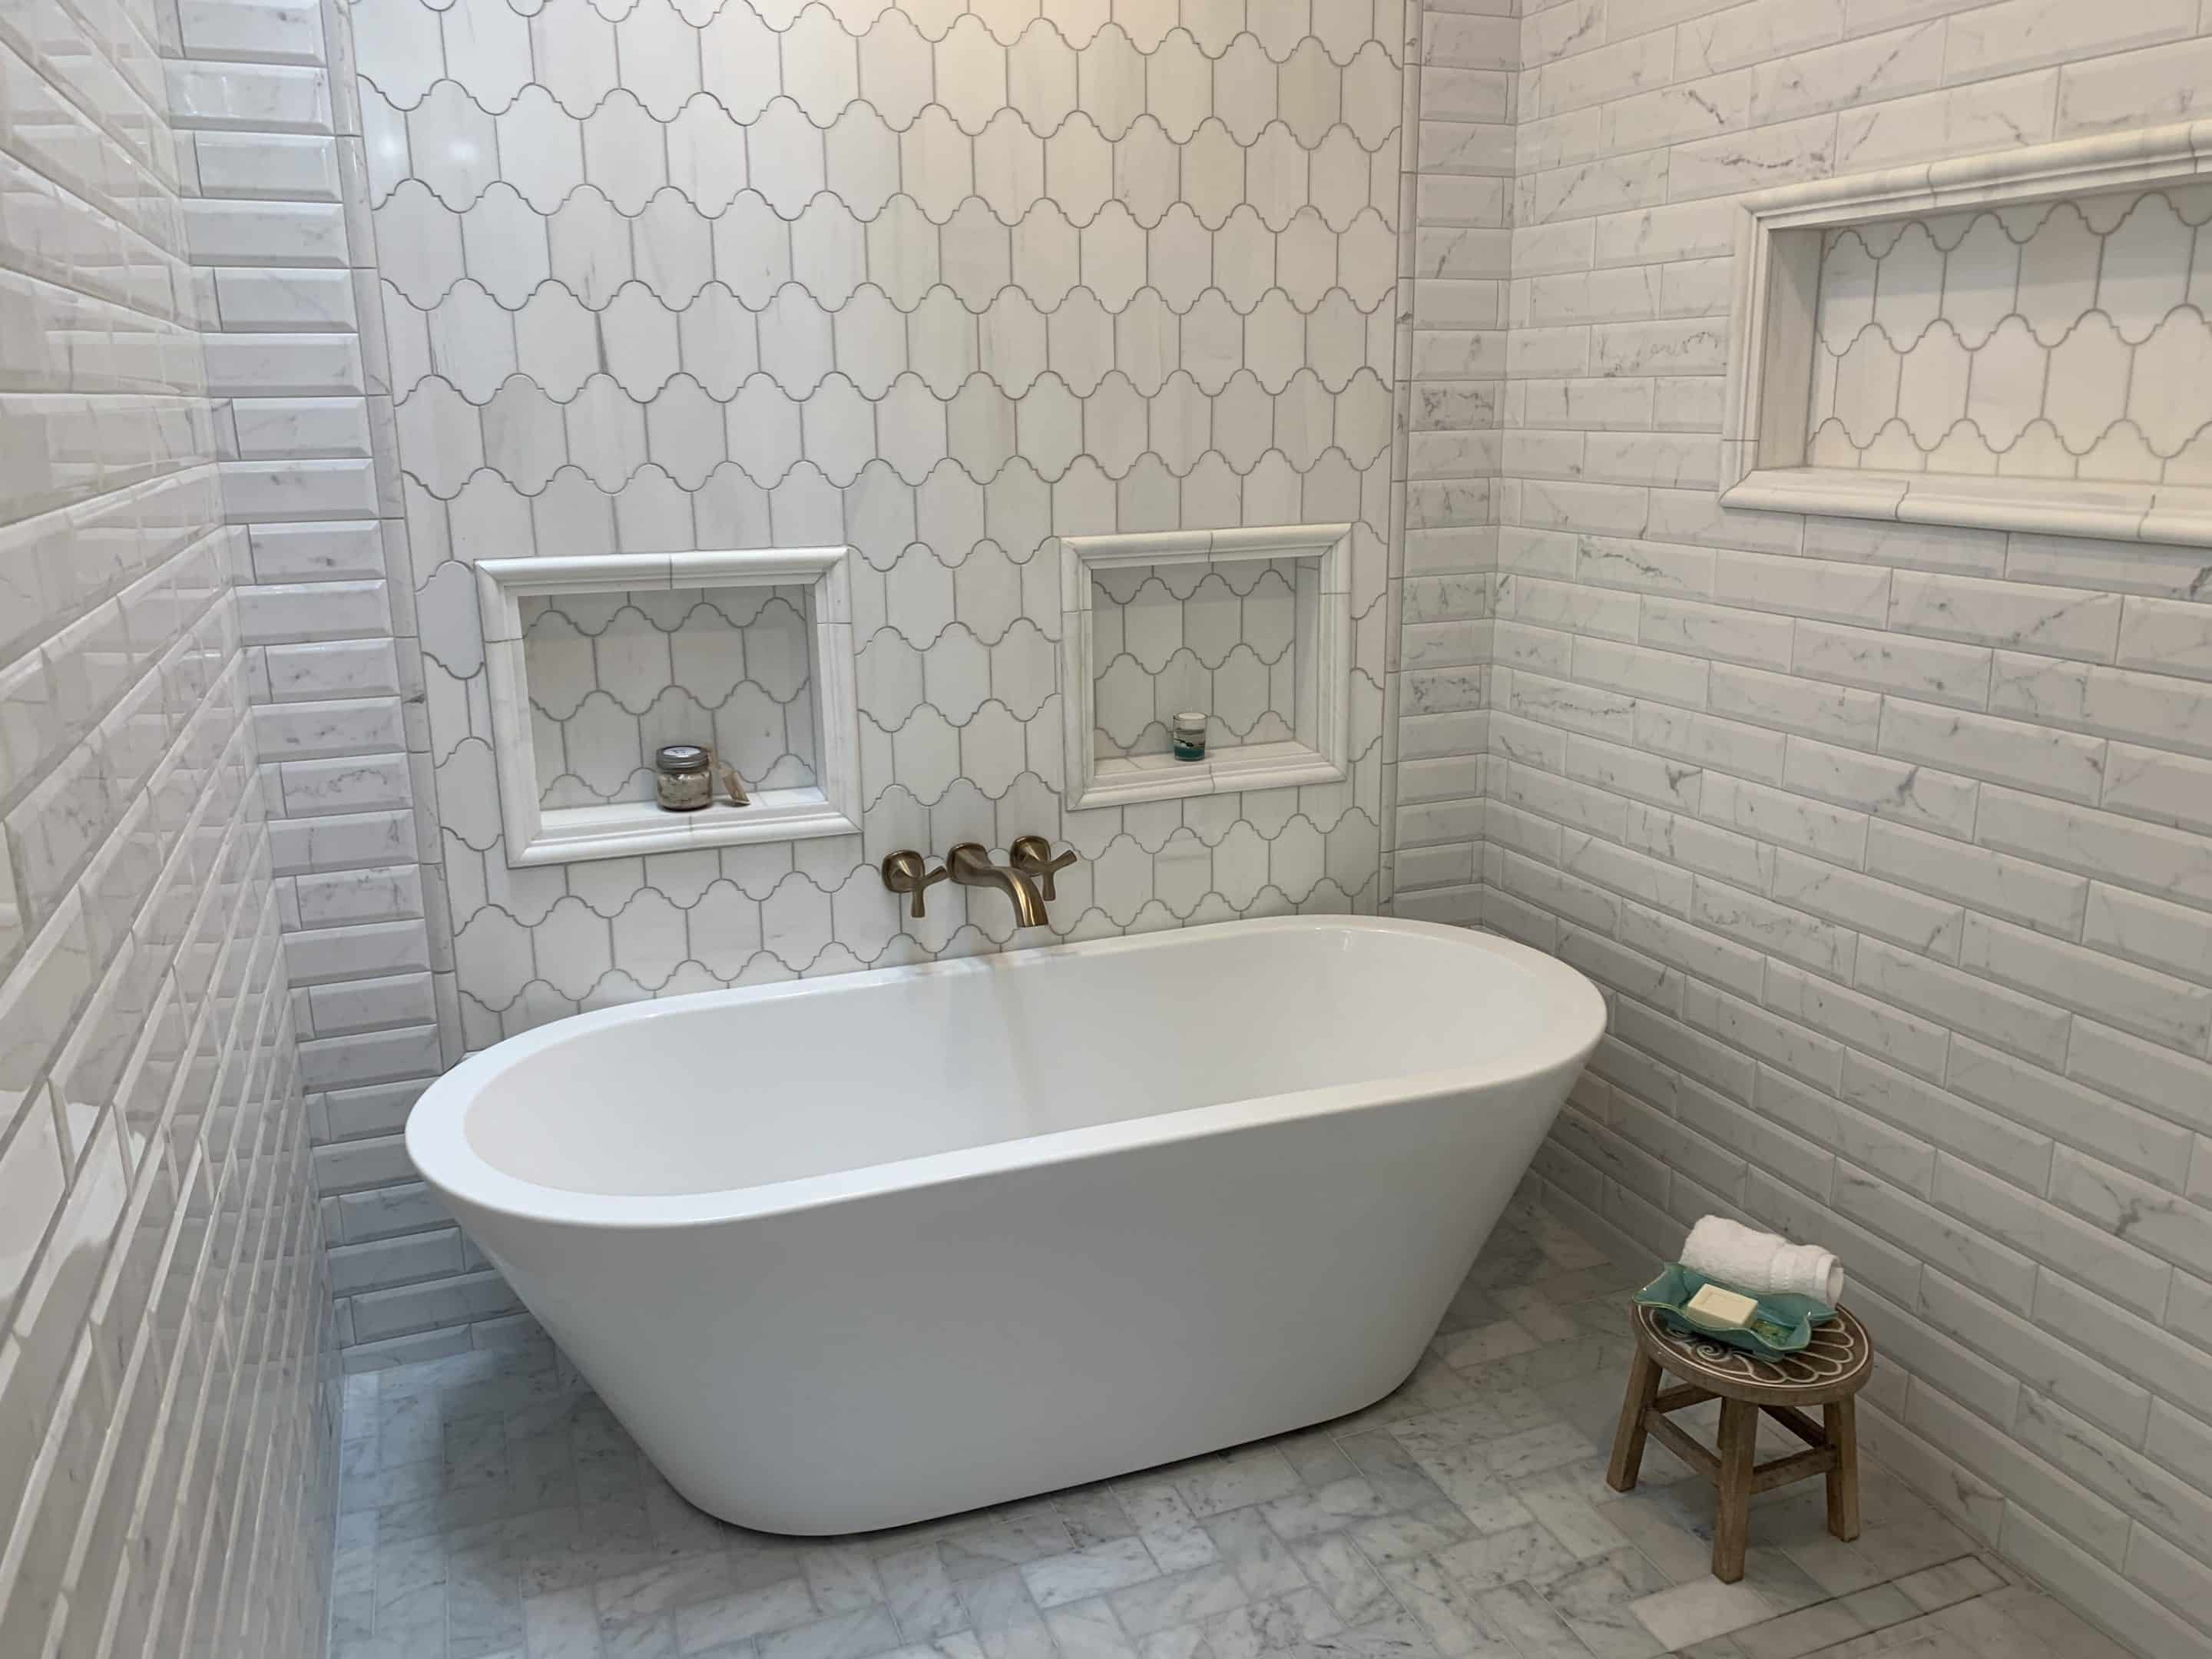 Bathtub Buying Guide expand kitchen and master bath